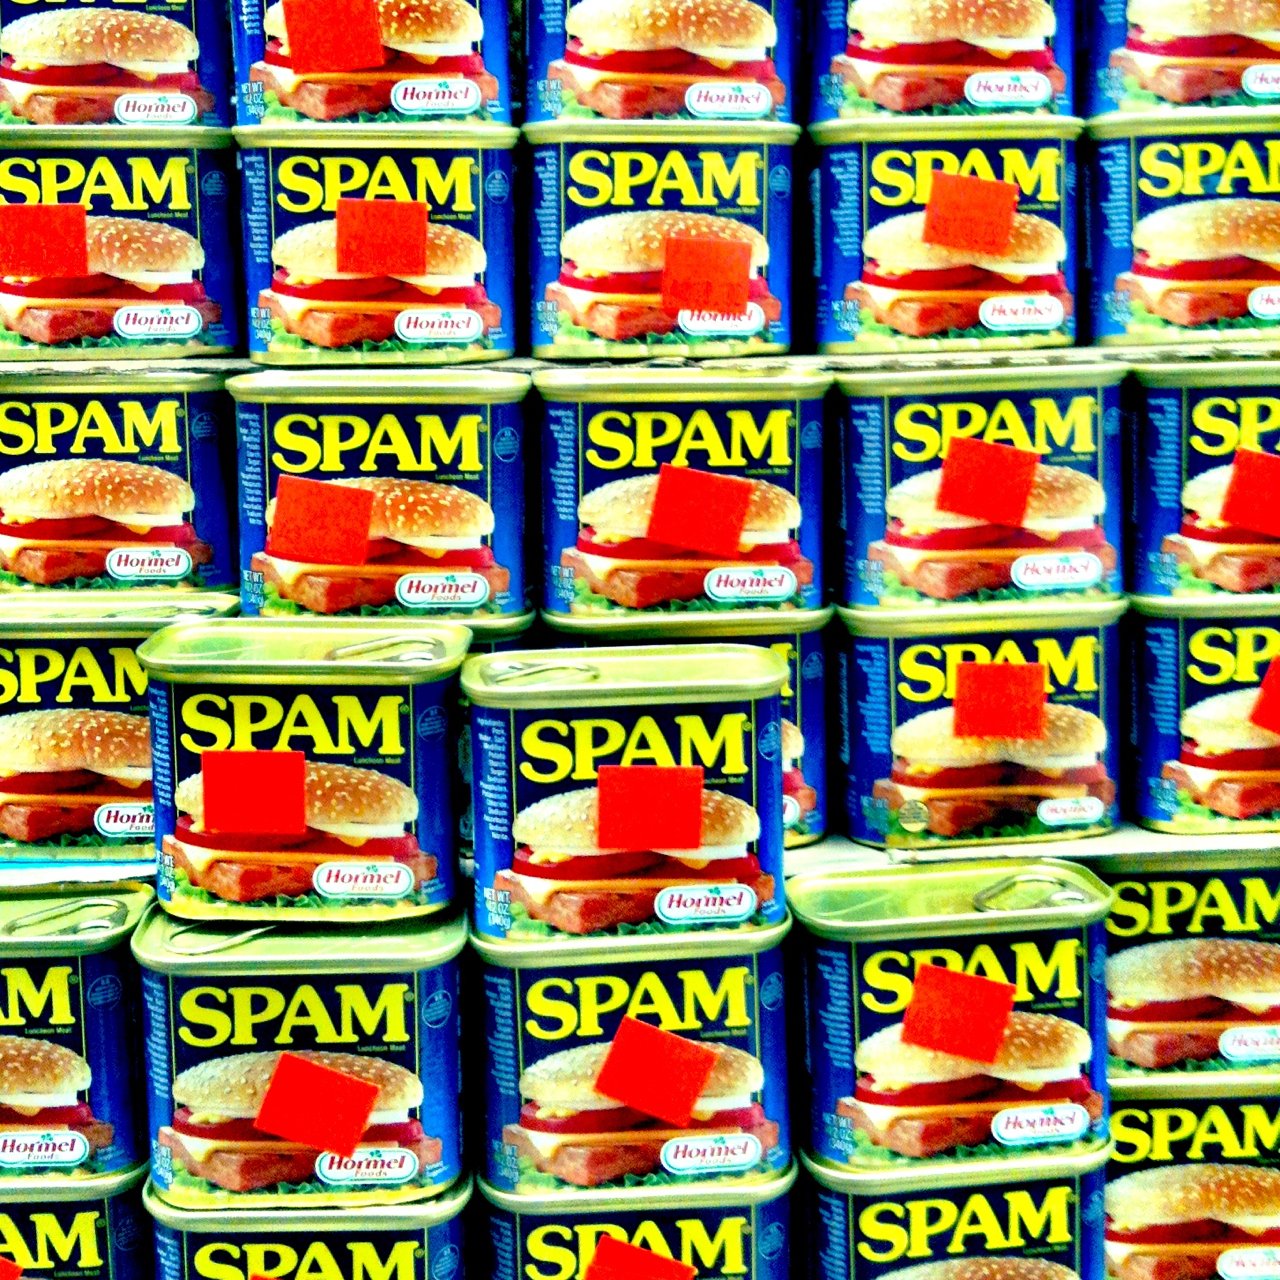 Formidable Wall of SPAM